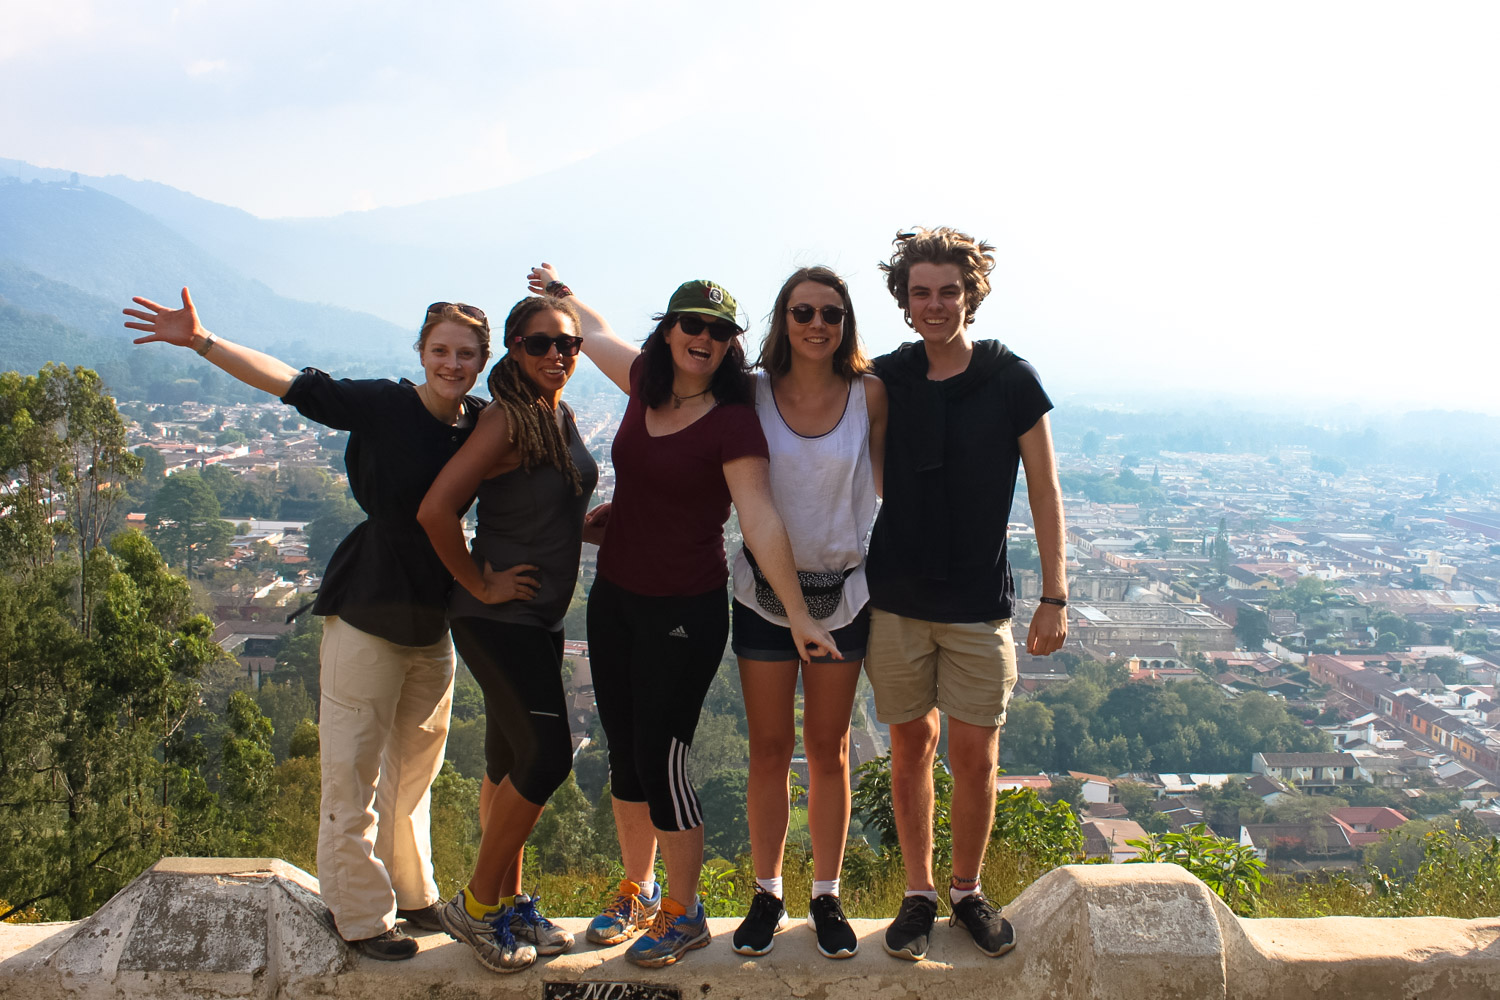 Hanging out with some new friends on an excursion to cerro del cruz in antigua, guatemala